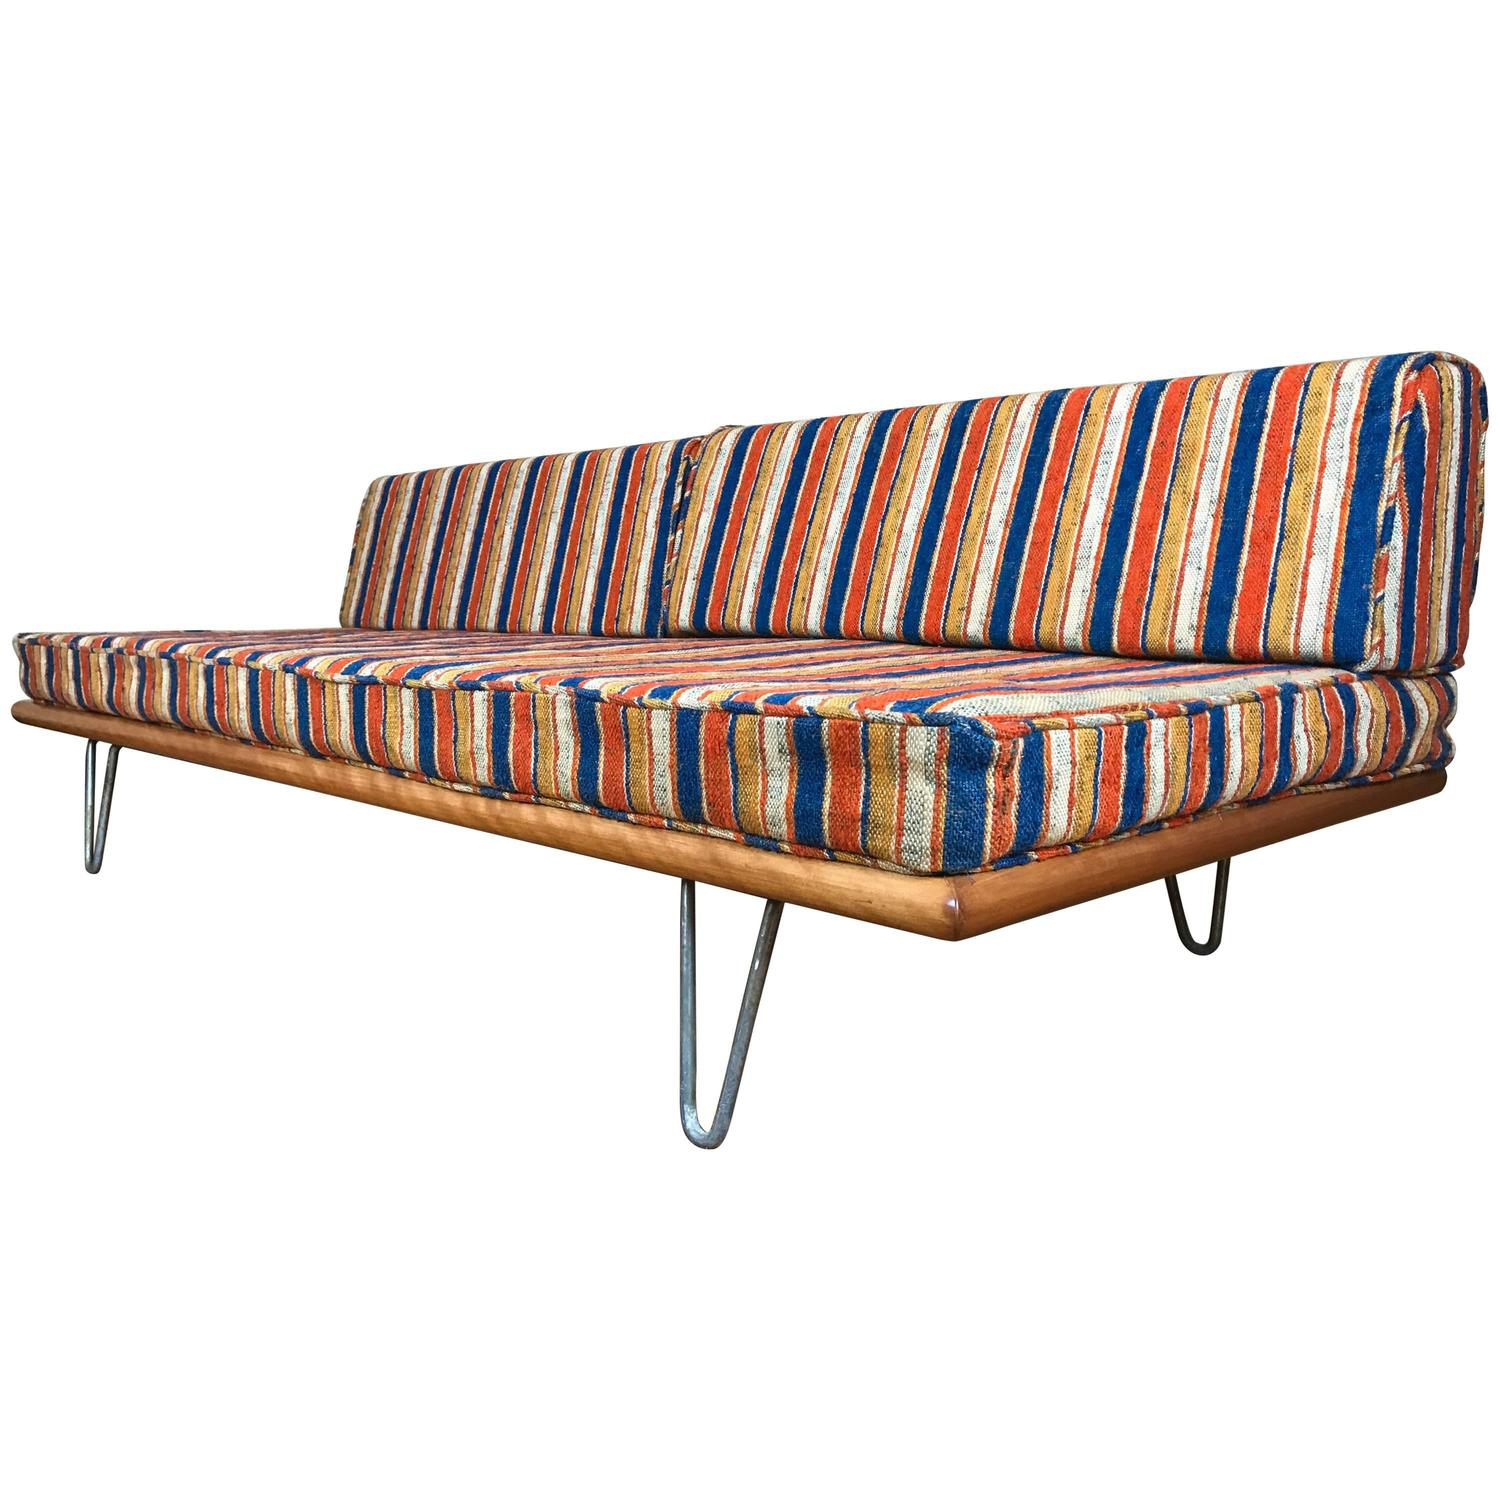 Mid Century Modern Daybeds 363 For Sale at 1stdibs